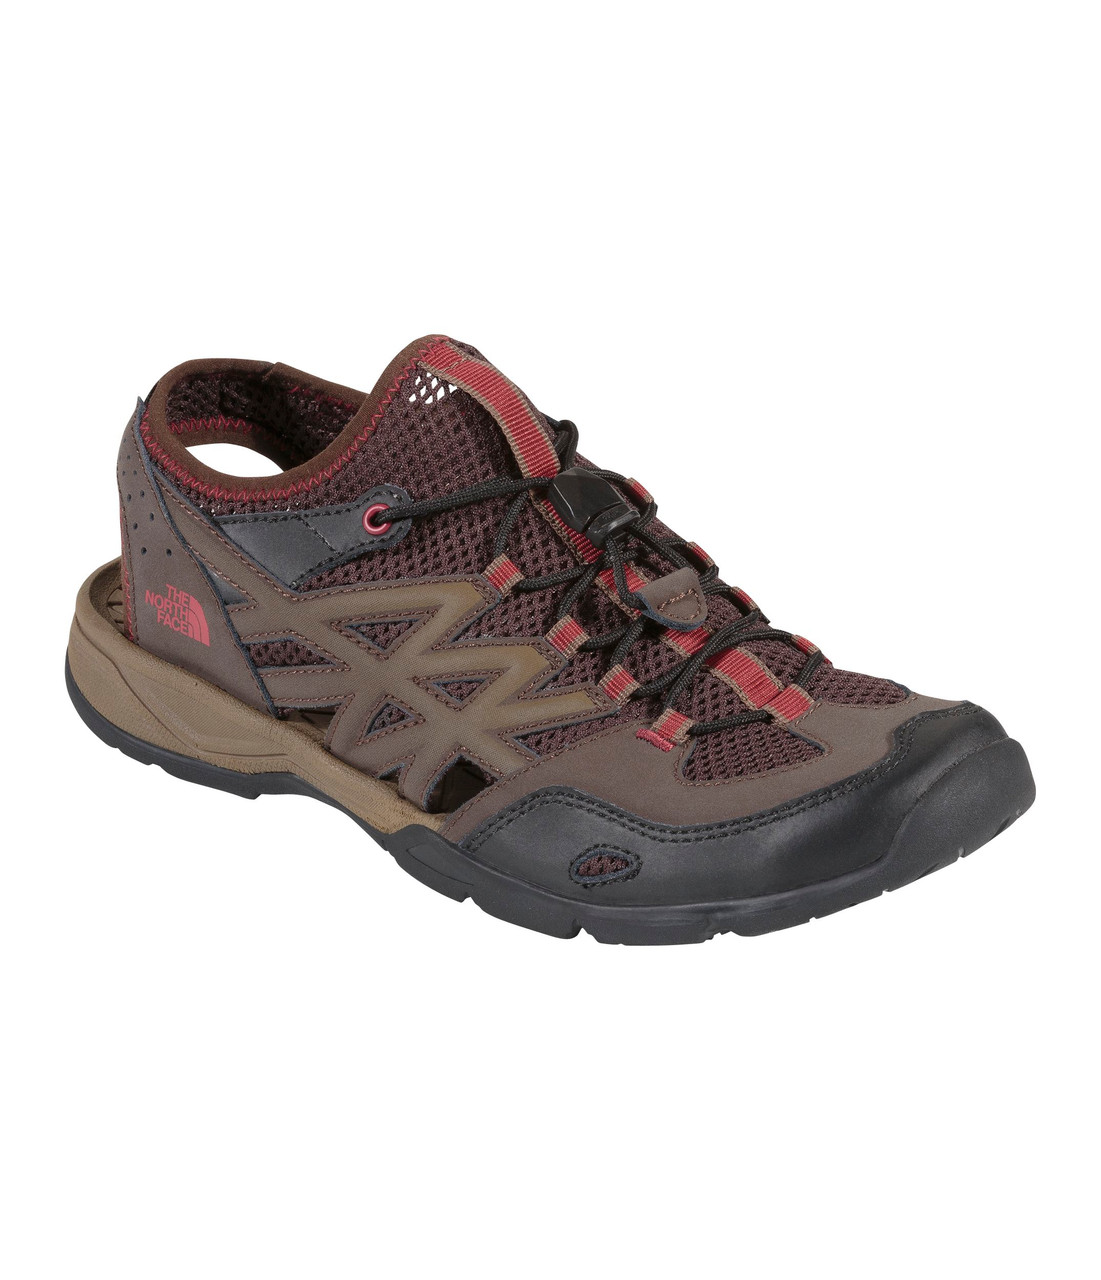 e653232645f4 Men s The North Face Hedgefrog III Water Shoe - Sieverts Sporting Goods